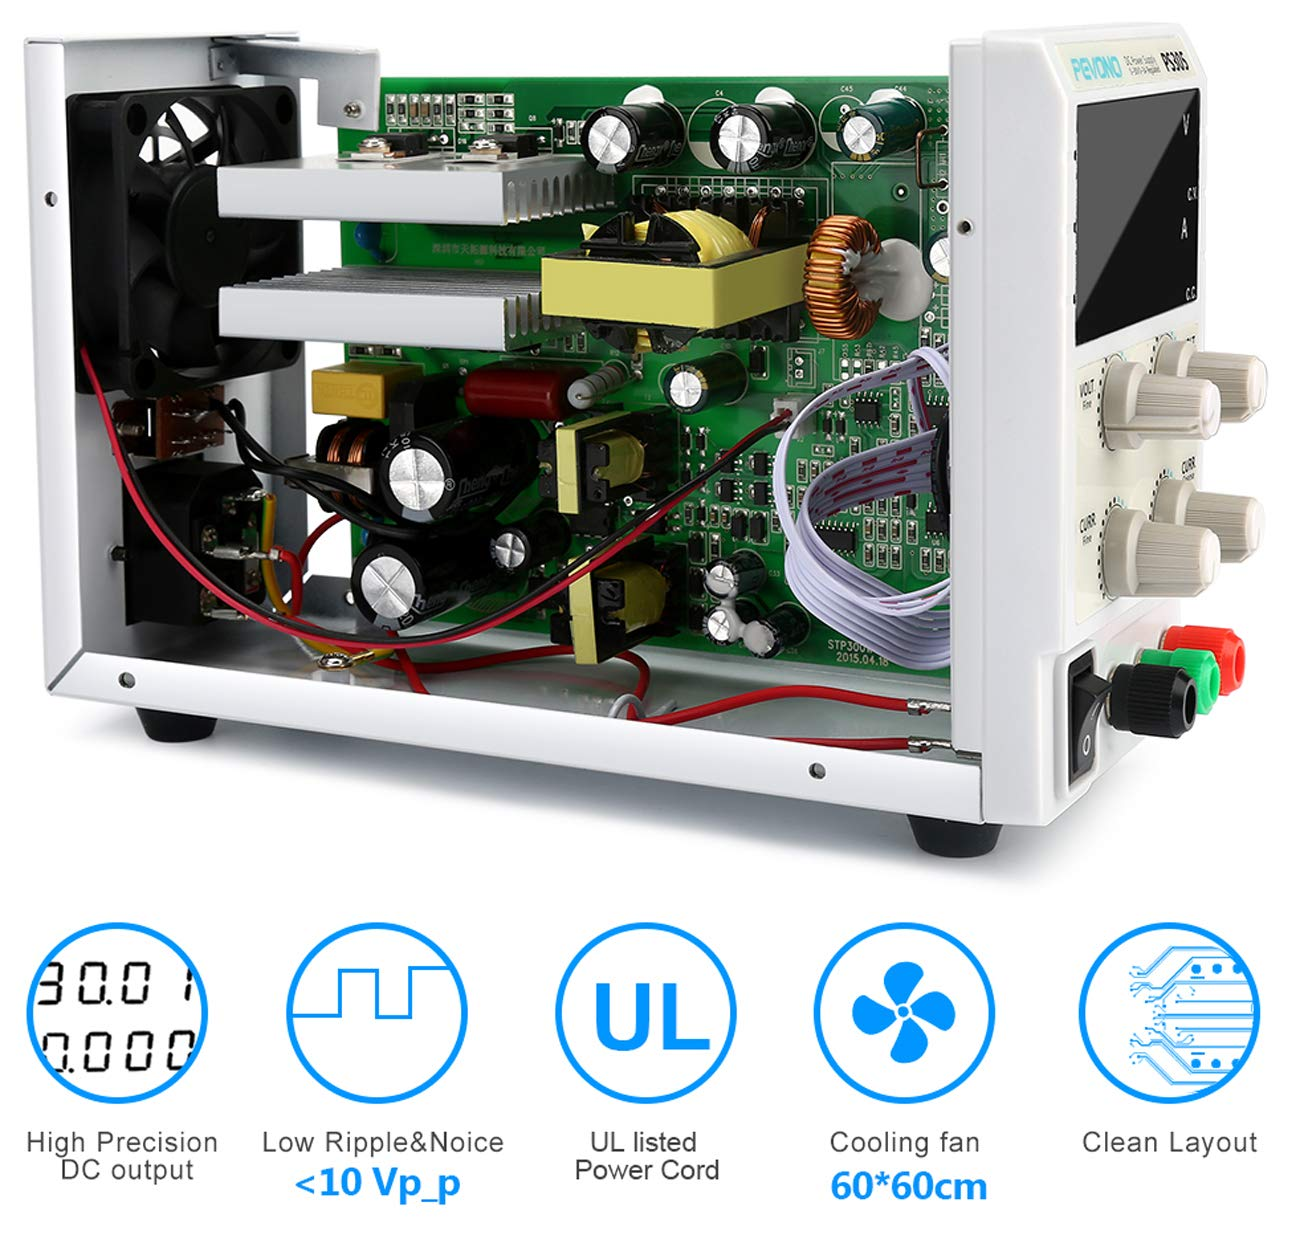 Best DC Bench Power Supply, Pevono PS305H 30V/5A 4 Digital LED Desktop Switching Variable Power Supply Voltage&Current Regulated Supply Power Source For Lab Repair,Electronic Tester, Power Calculator by Pevono (Image #4)